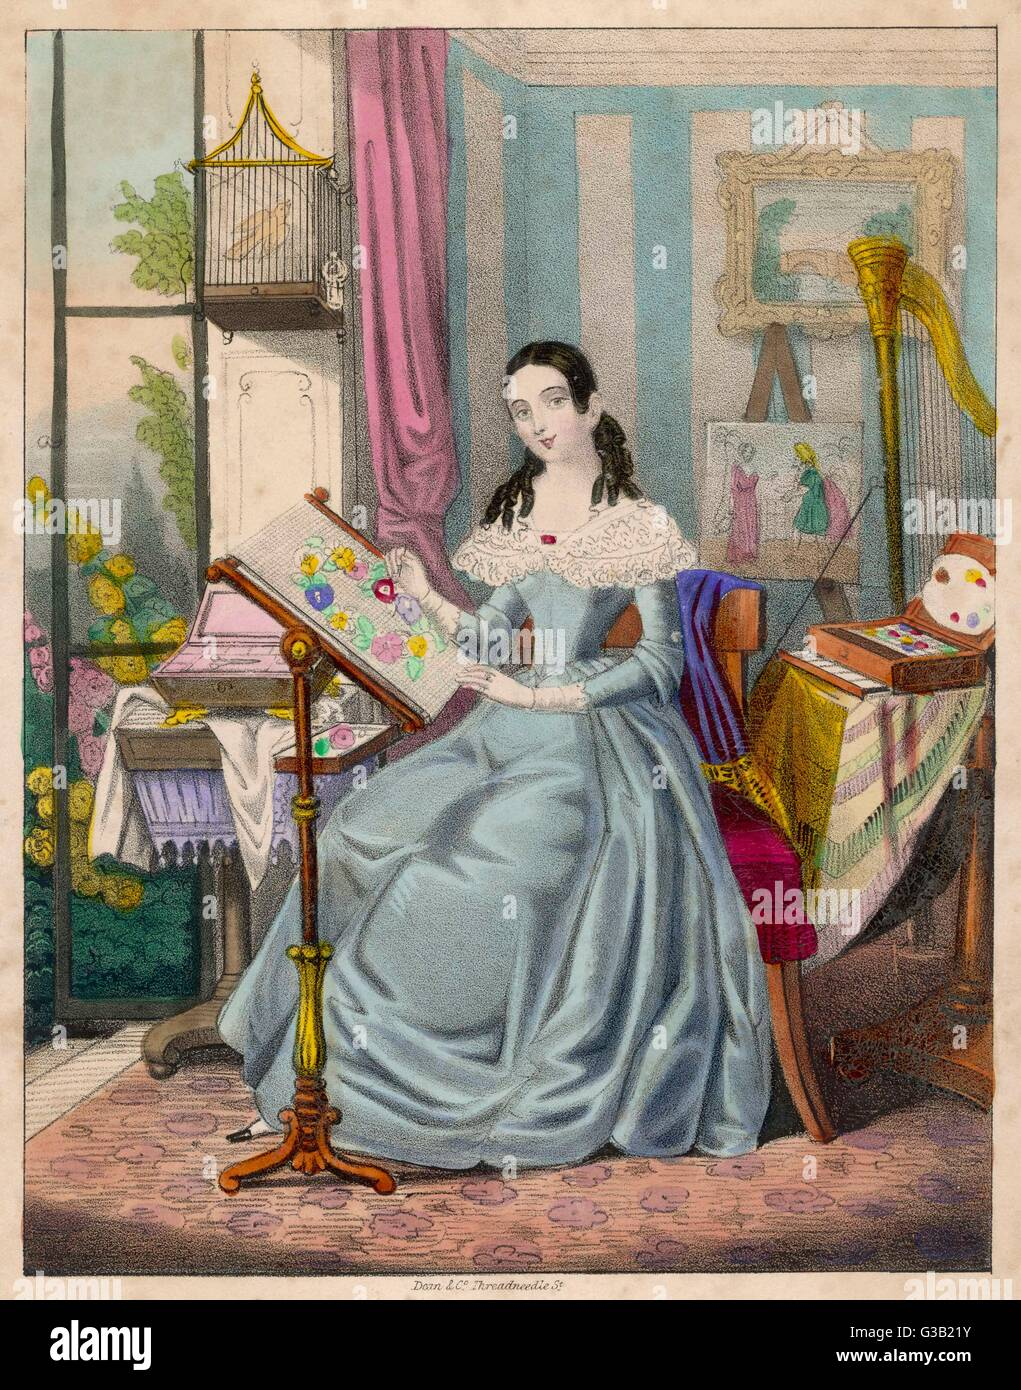 'The Industrious Young Lady' -  a Victorian girl and her  accomplishments        Date: 1840s - Stock Image